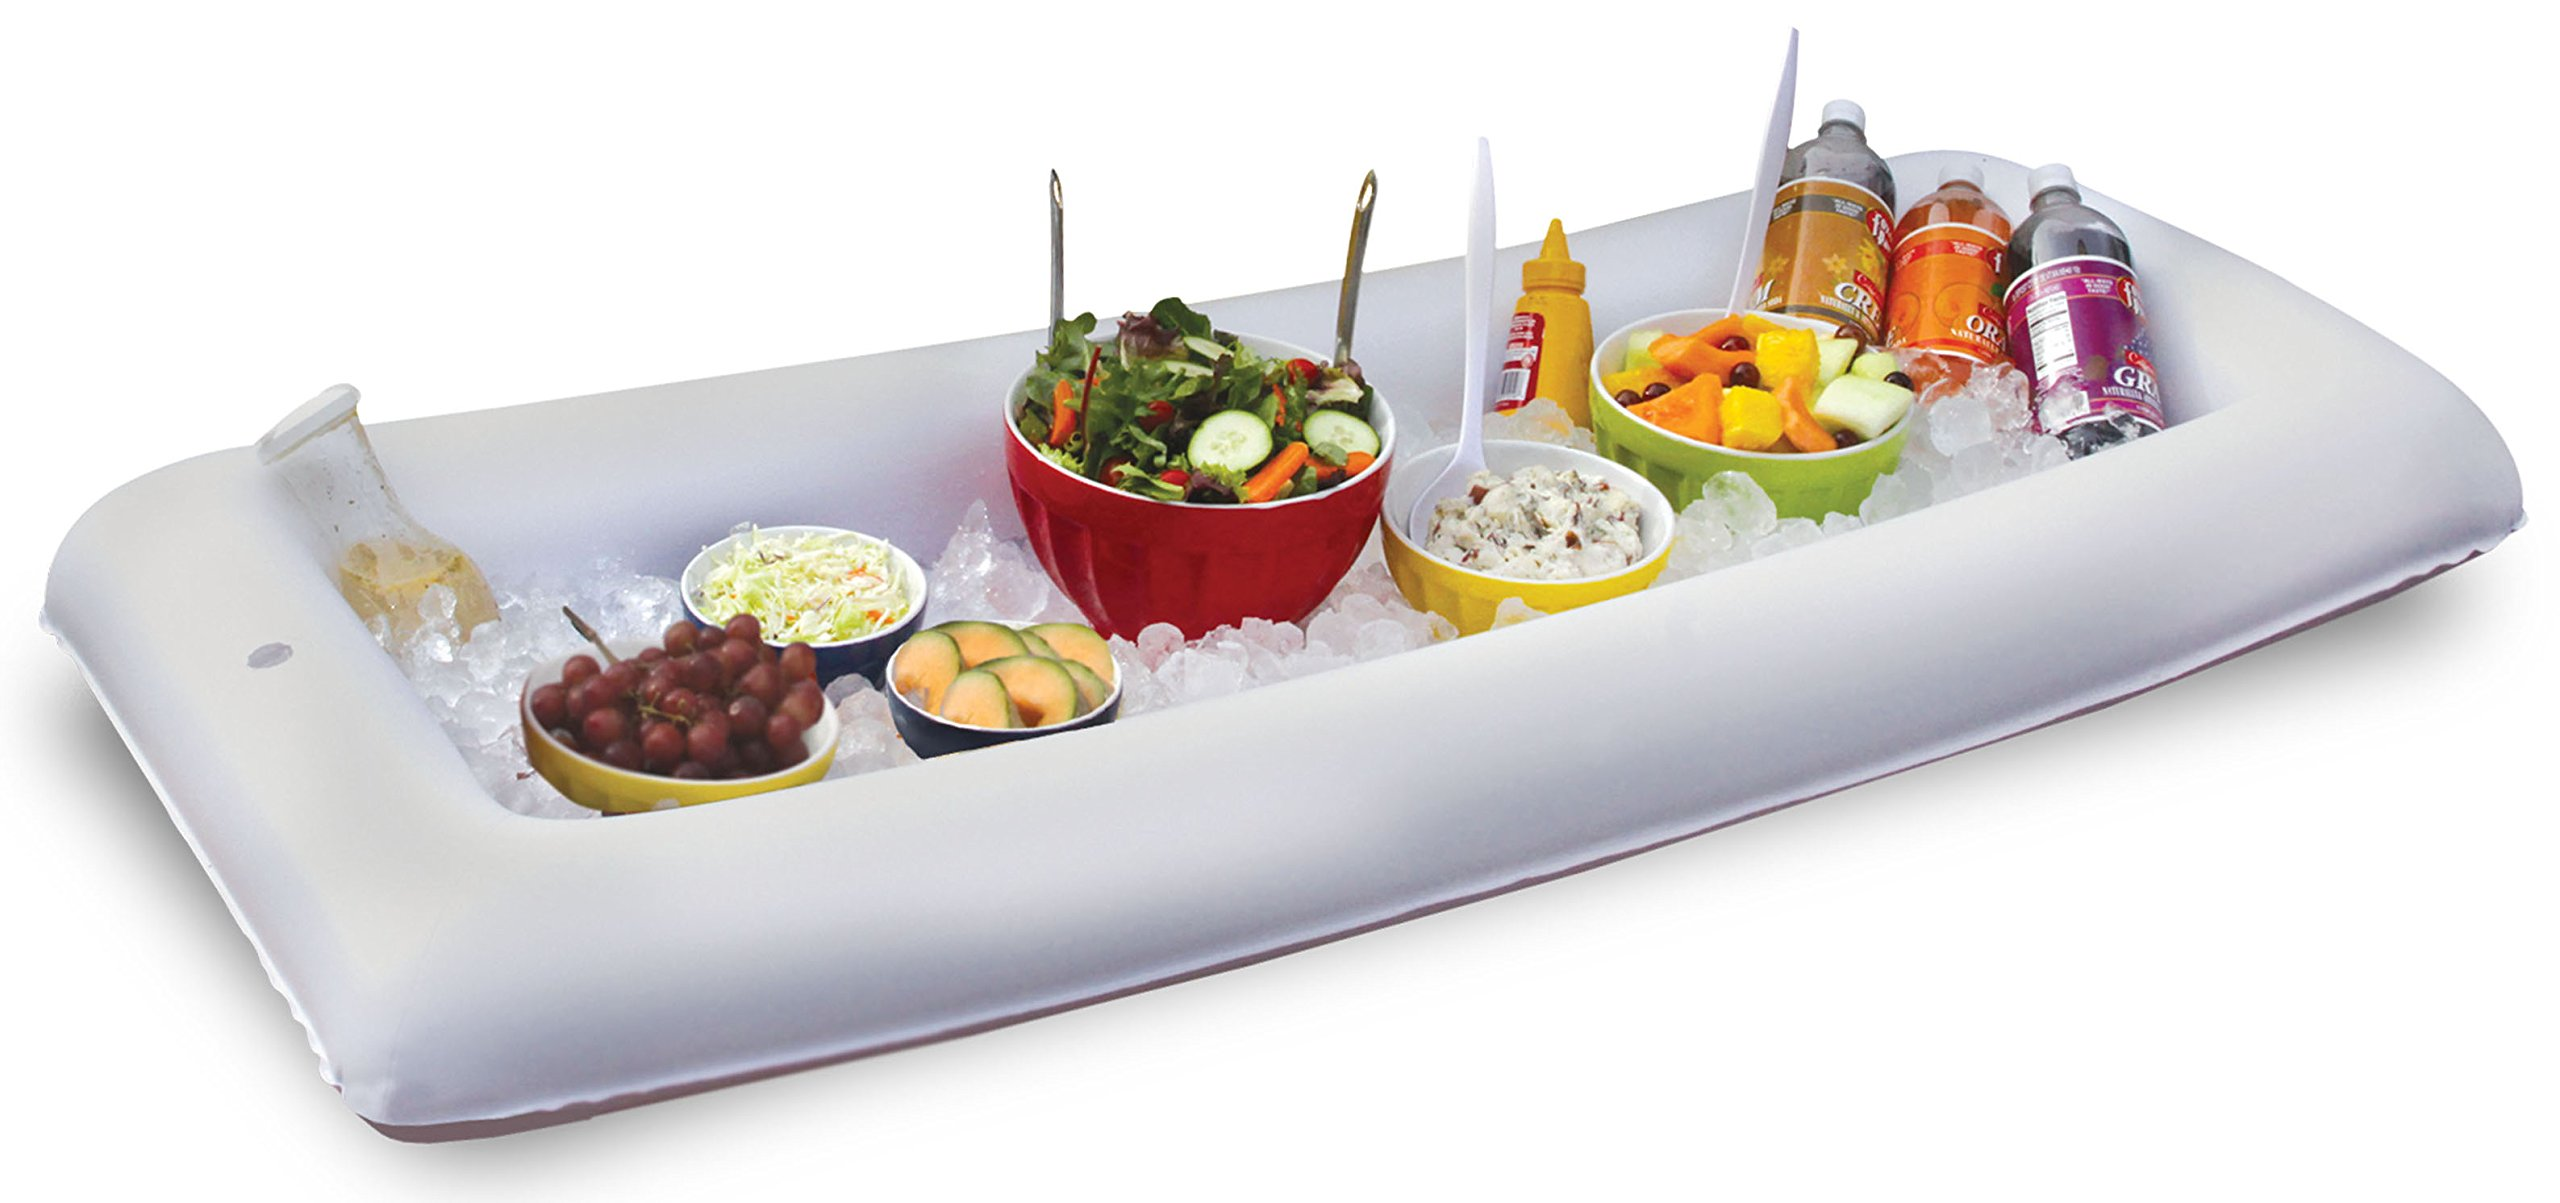 BW Brands Inflatabuffet Portable/Inflatable Buffet and Salad Bar, White